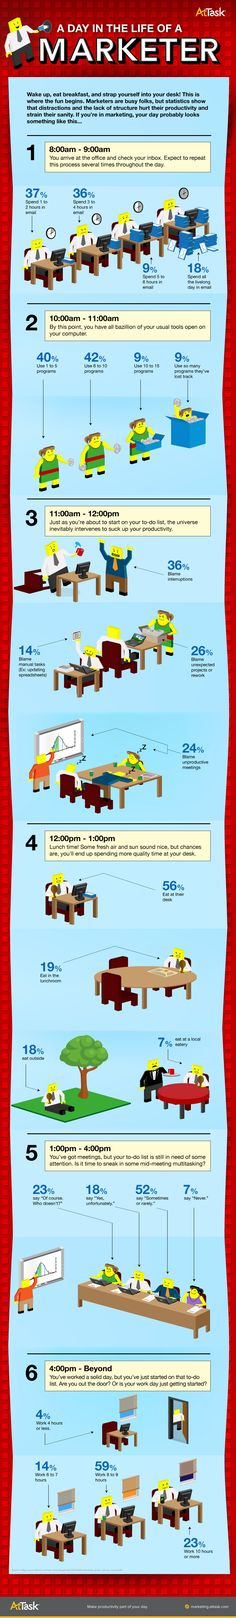 A Day in the Life of a Digital Marketer - #infographic #digitalmarketing